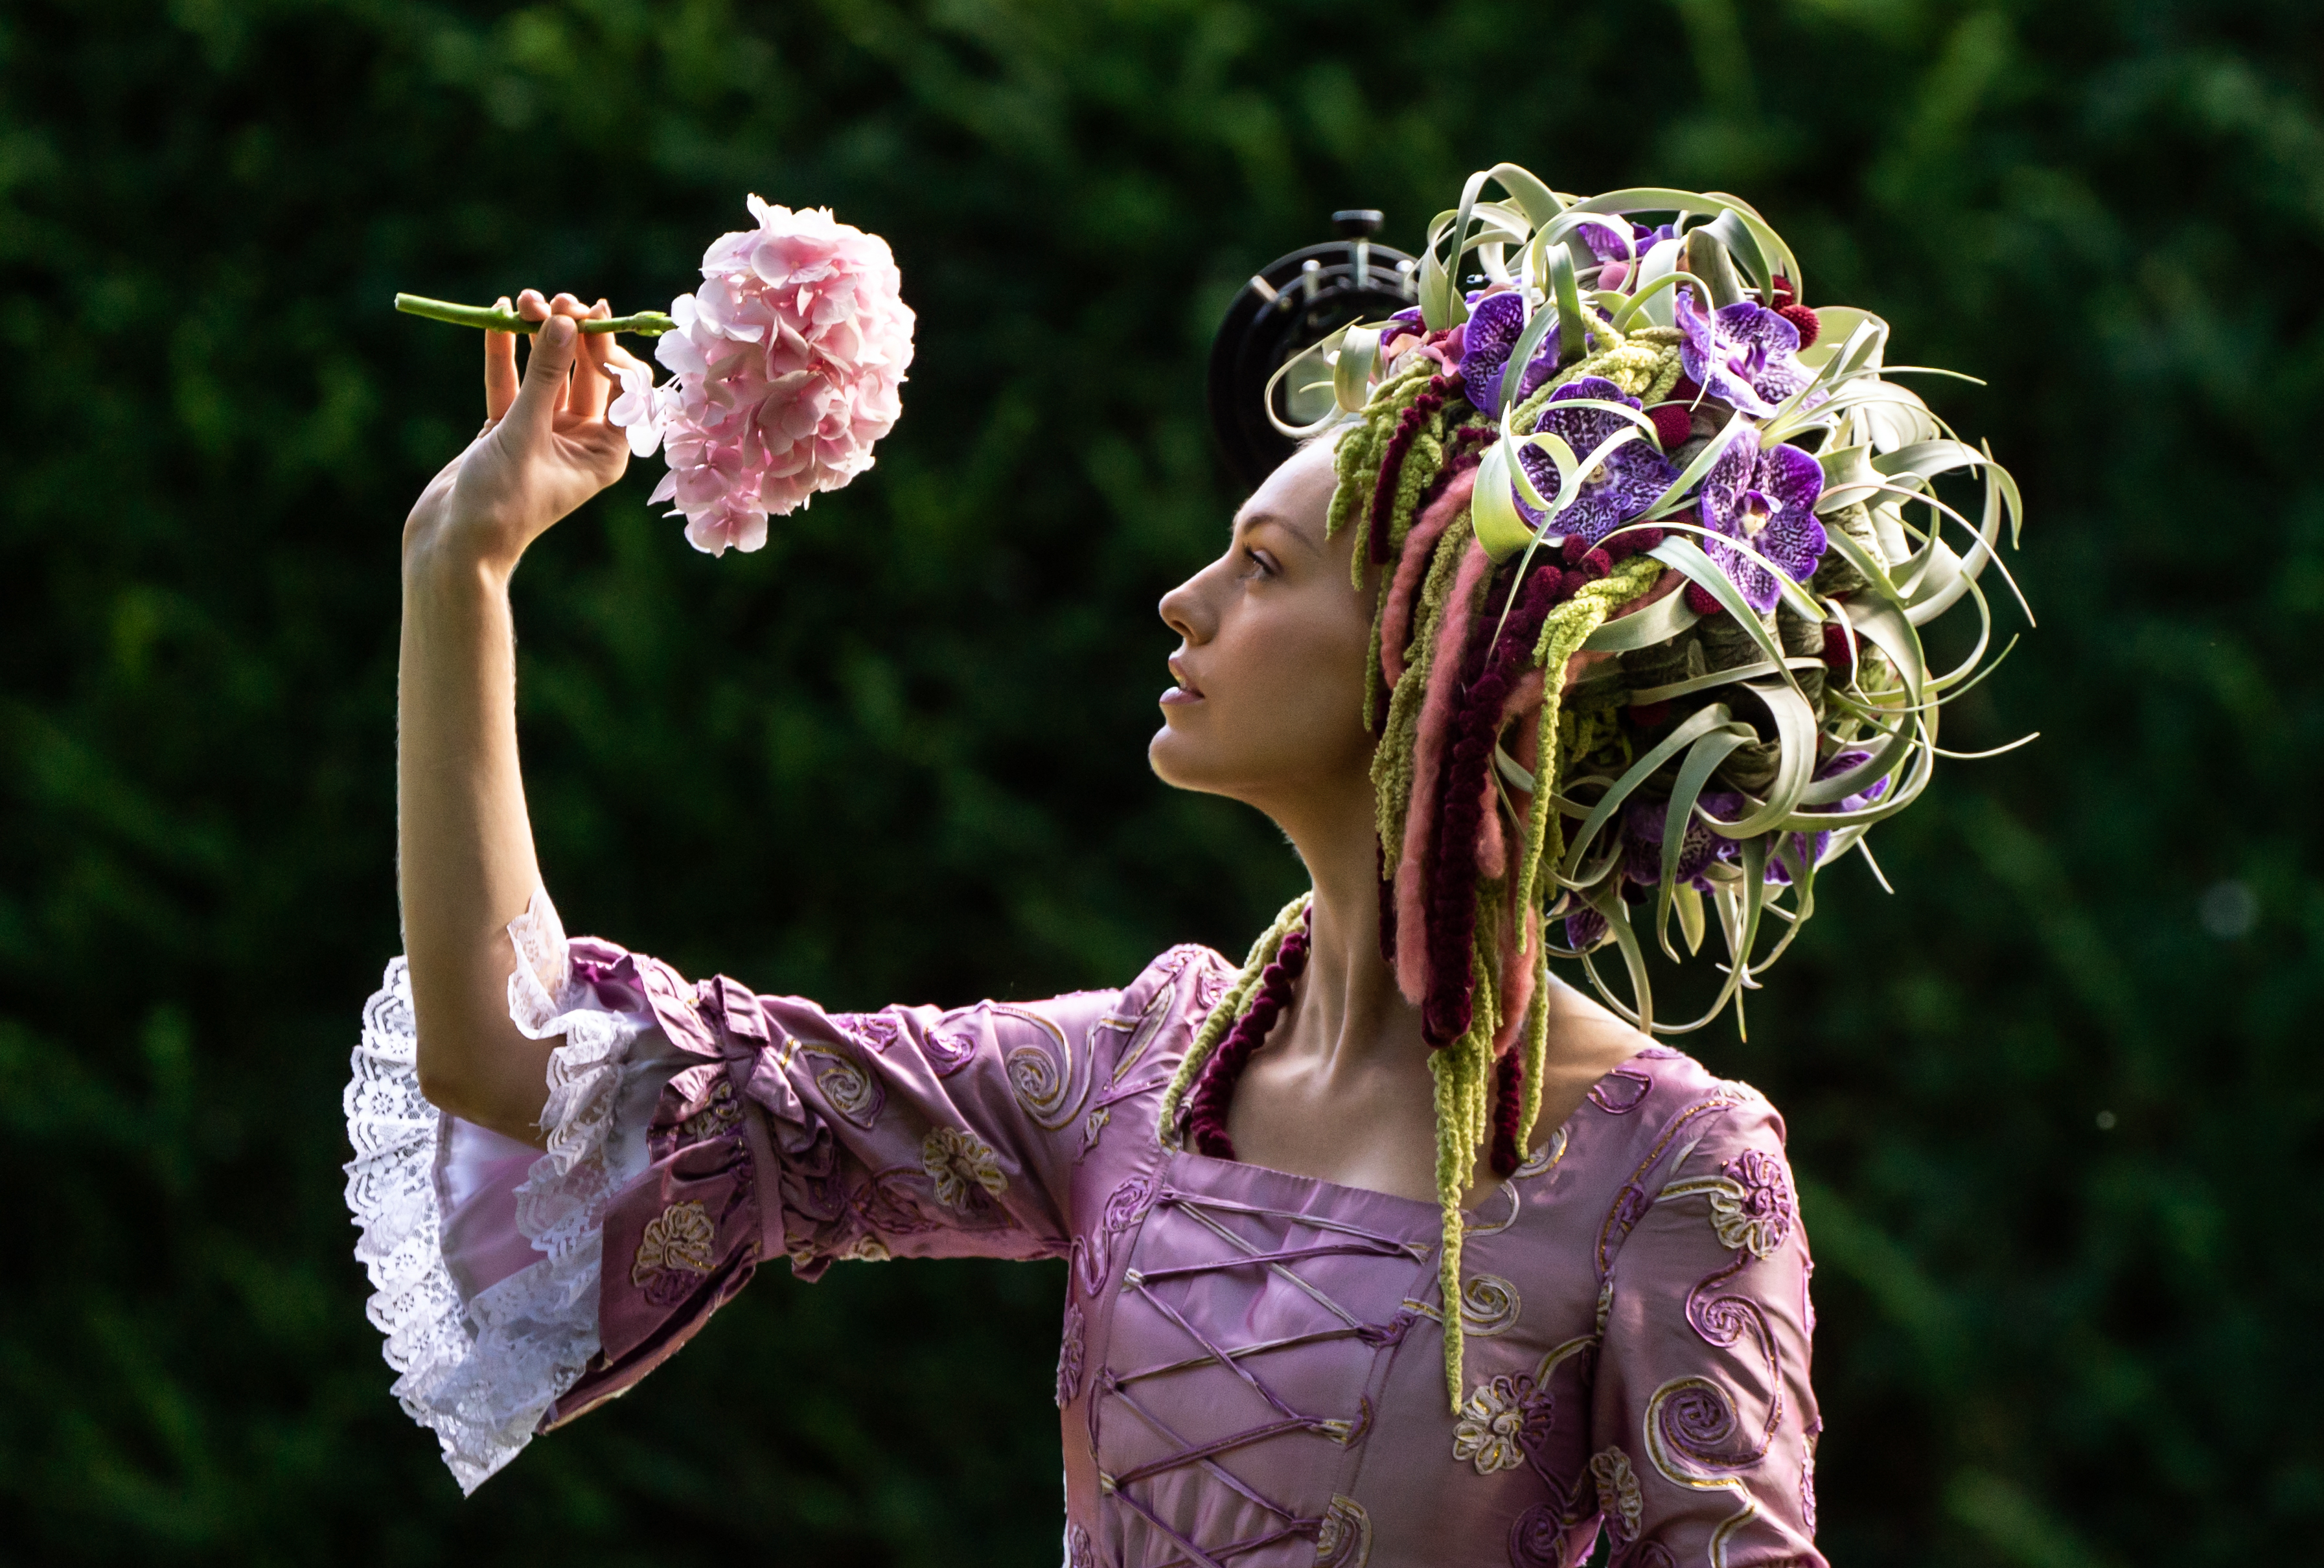 <p>Gemma Sadler models a fabulous Georgian costume, including a wig made from flowers and foliage created by Florist of the Year Helen James, during the staging day for the 2021 Harrogate Autumn Flower Show at Newby Hall, near Ripon. Picture date: Thursday September 16, 2021.</p>